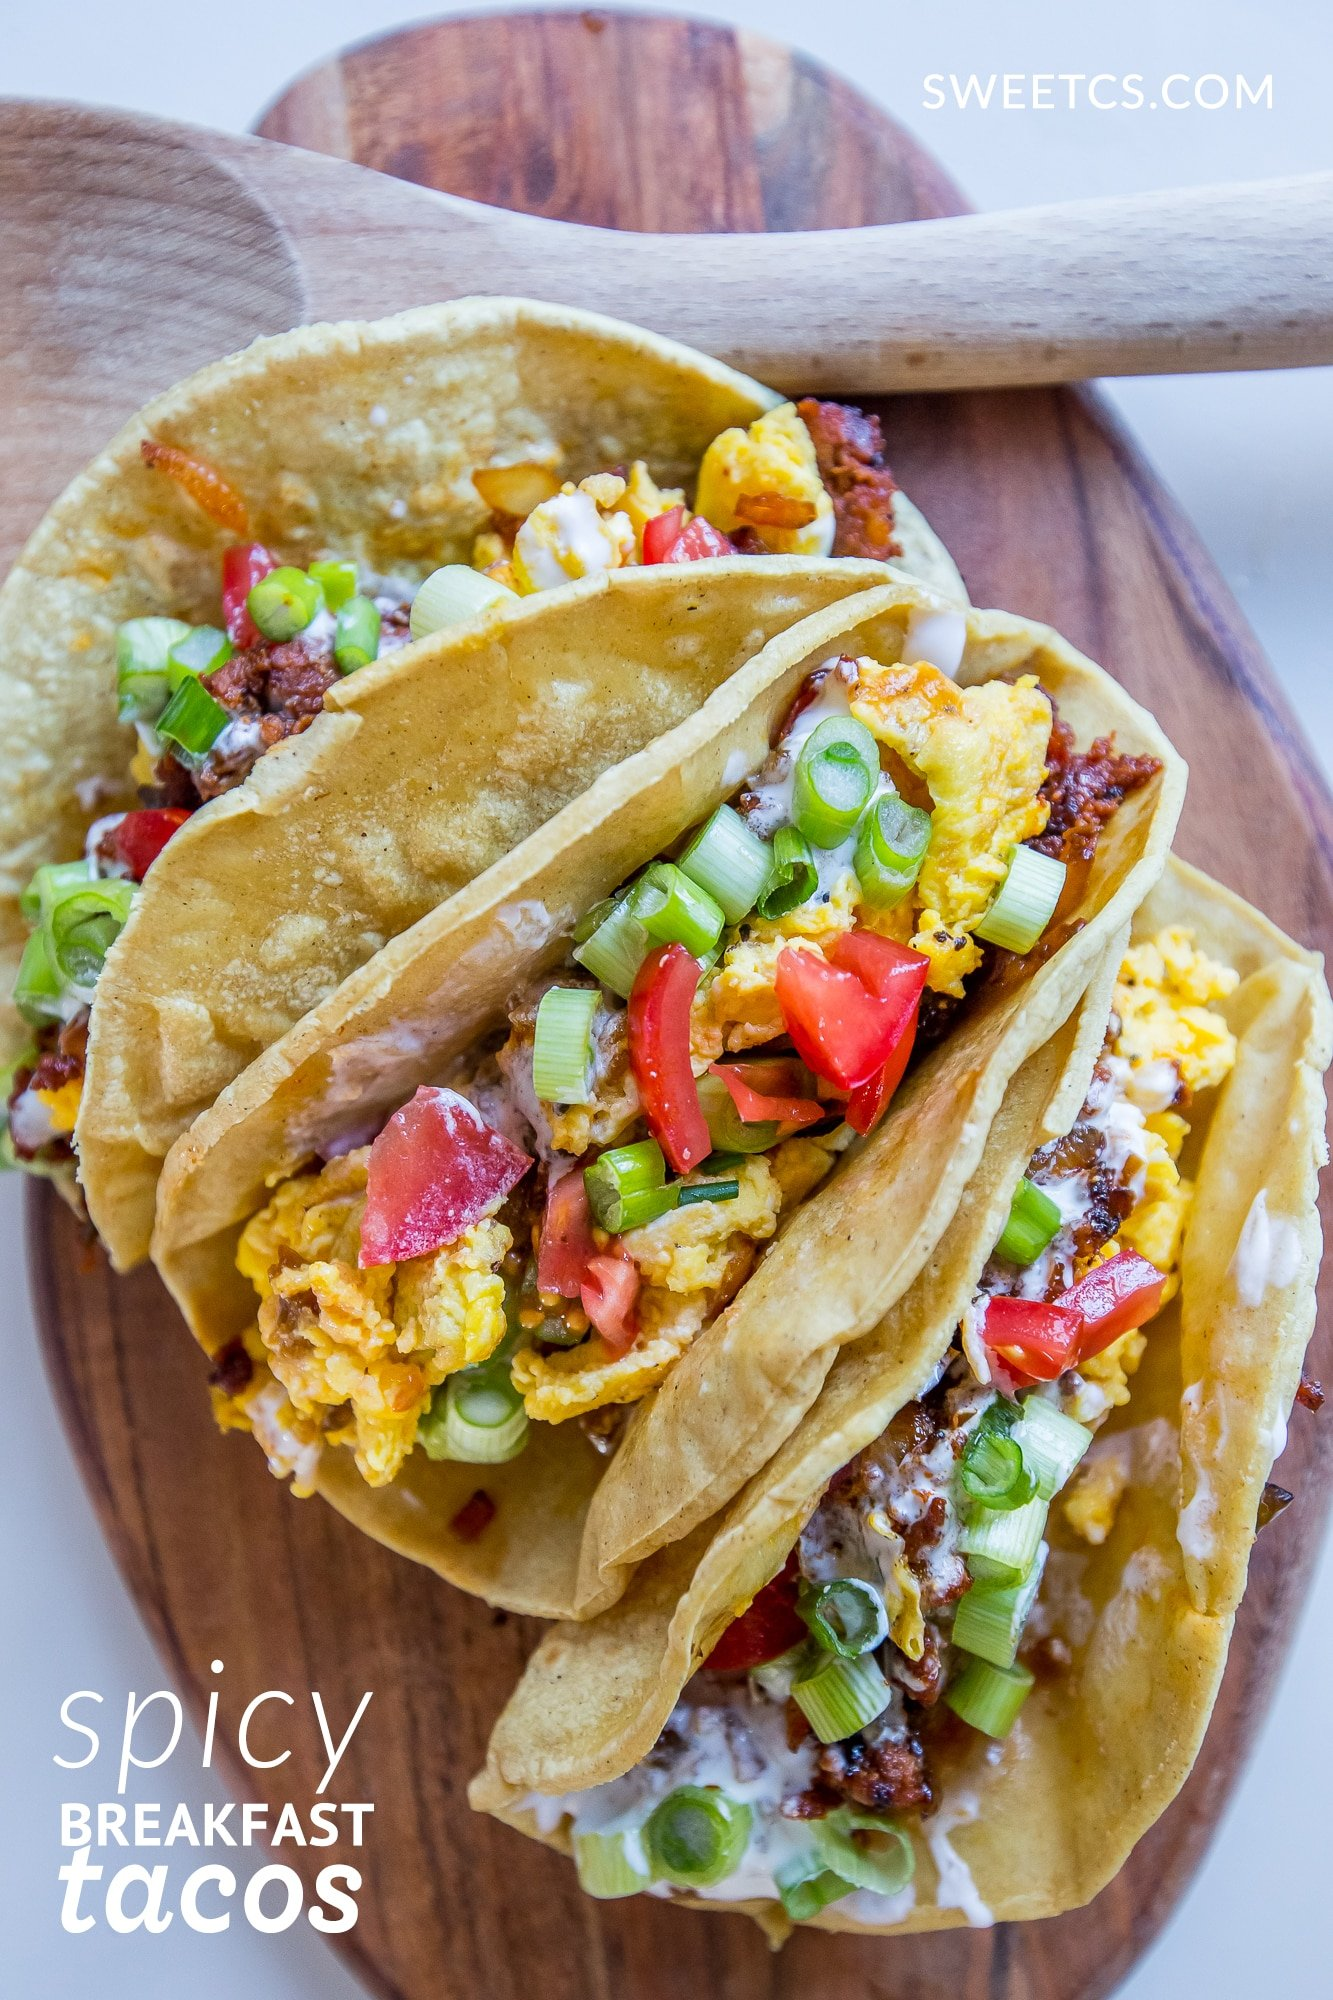 These breakfast tacos are so delicious and full of flavor!